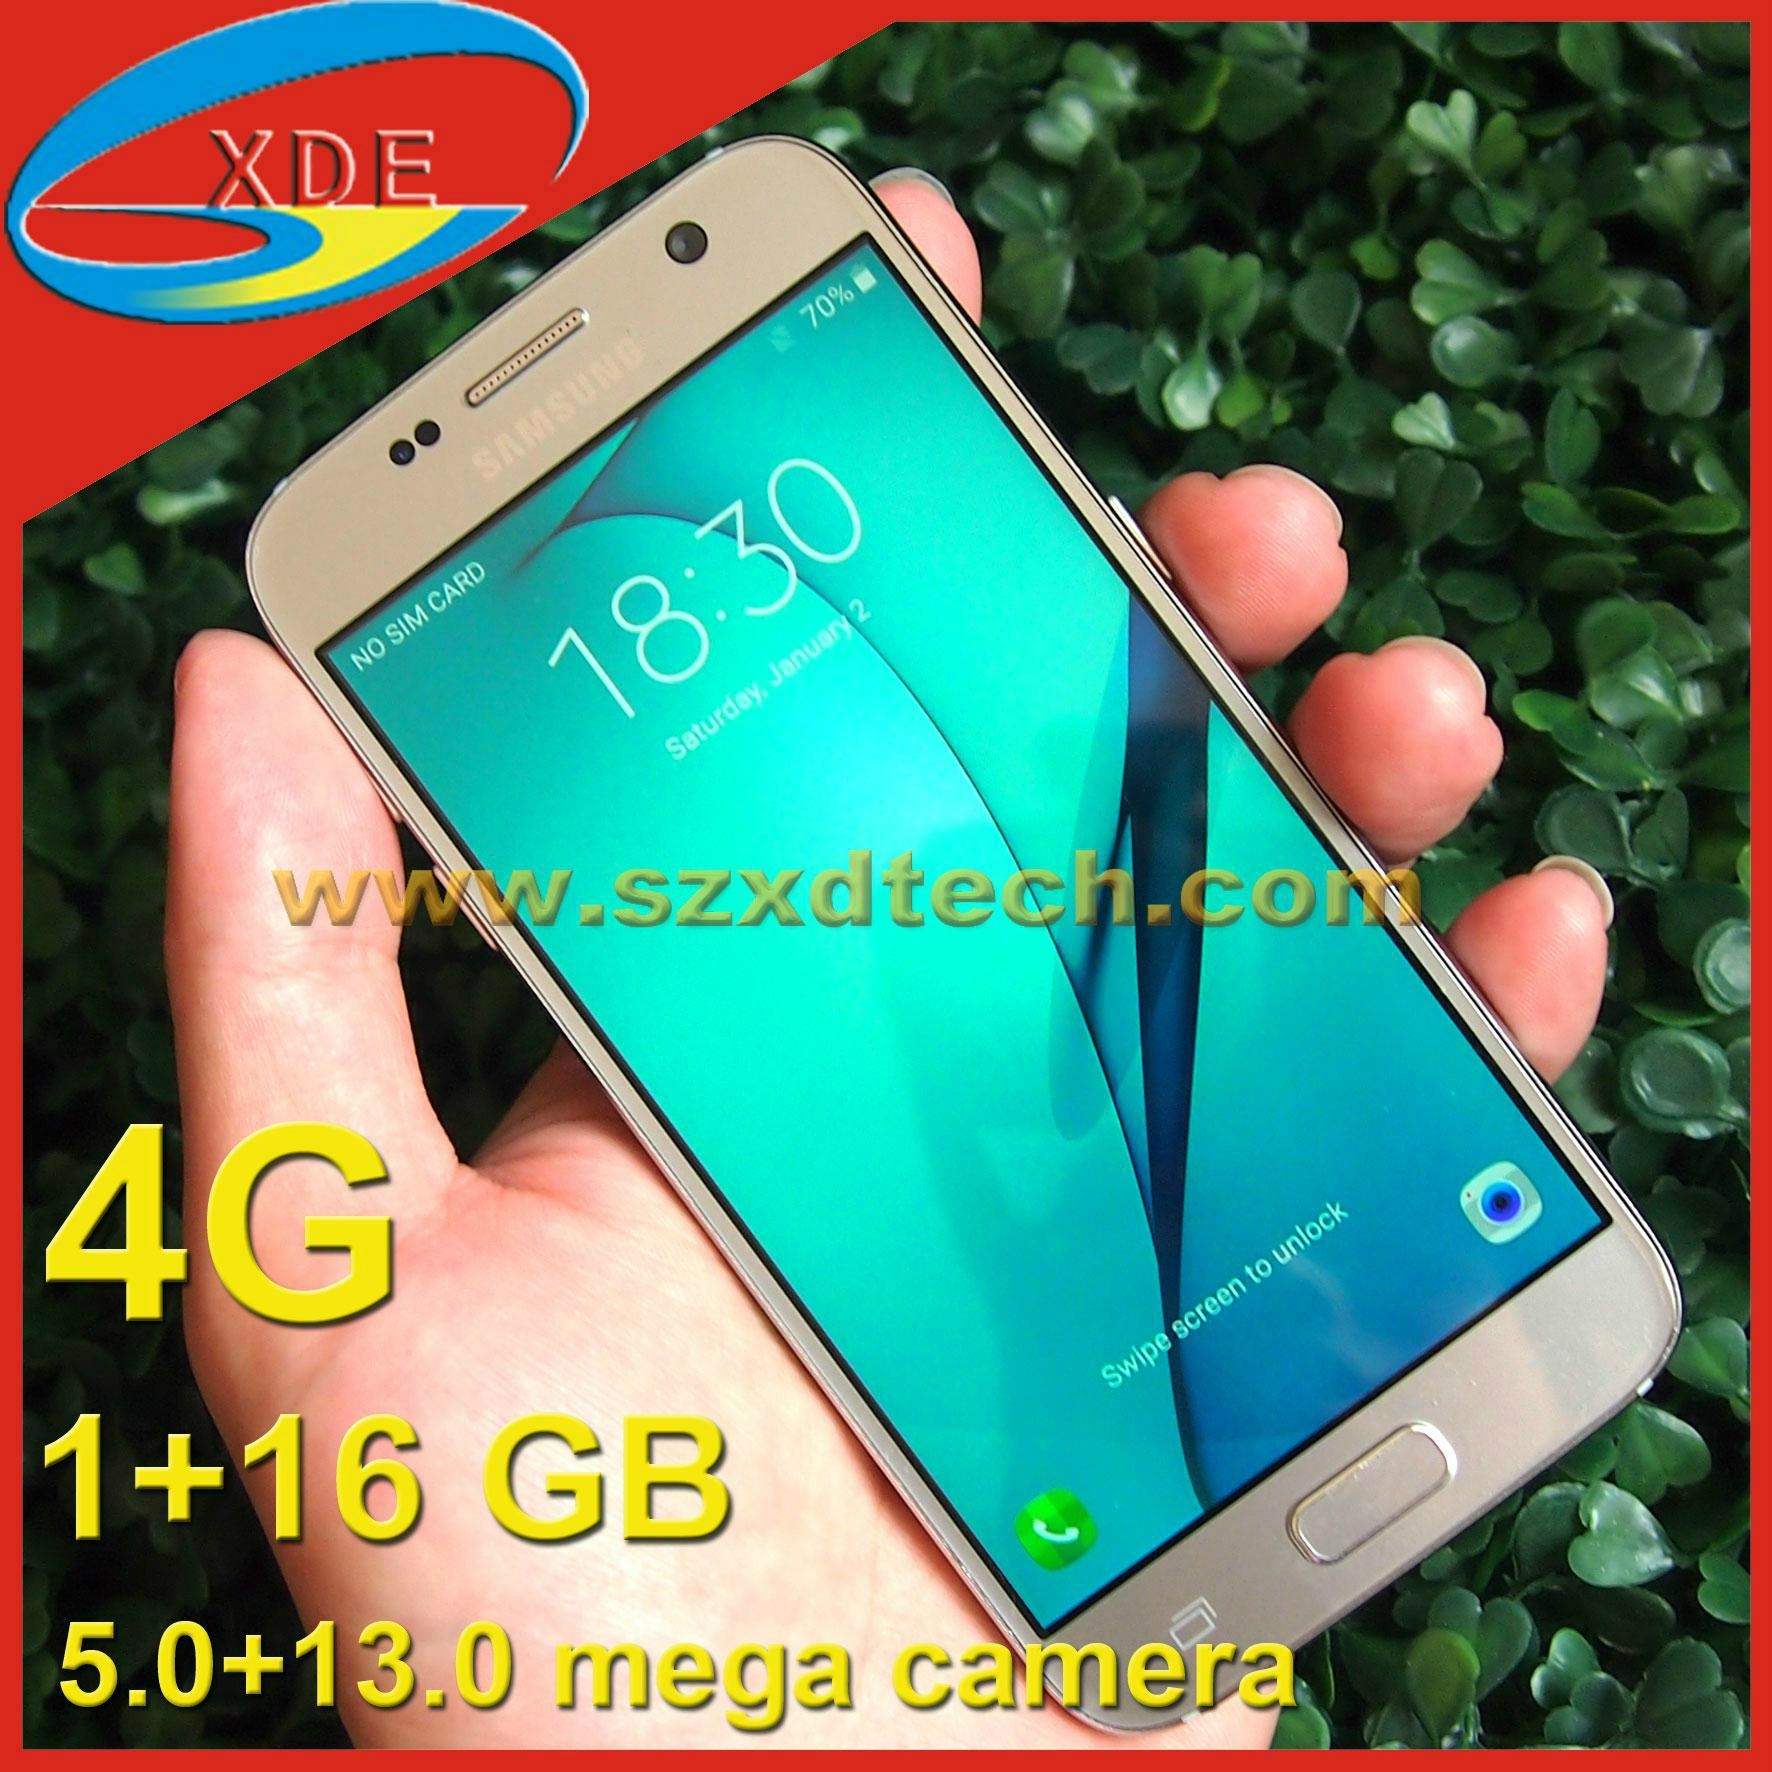 Samsung Galaxy S7 Clone Android Smart Phone Best Quality 4G